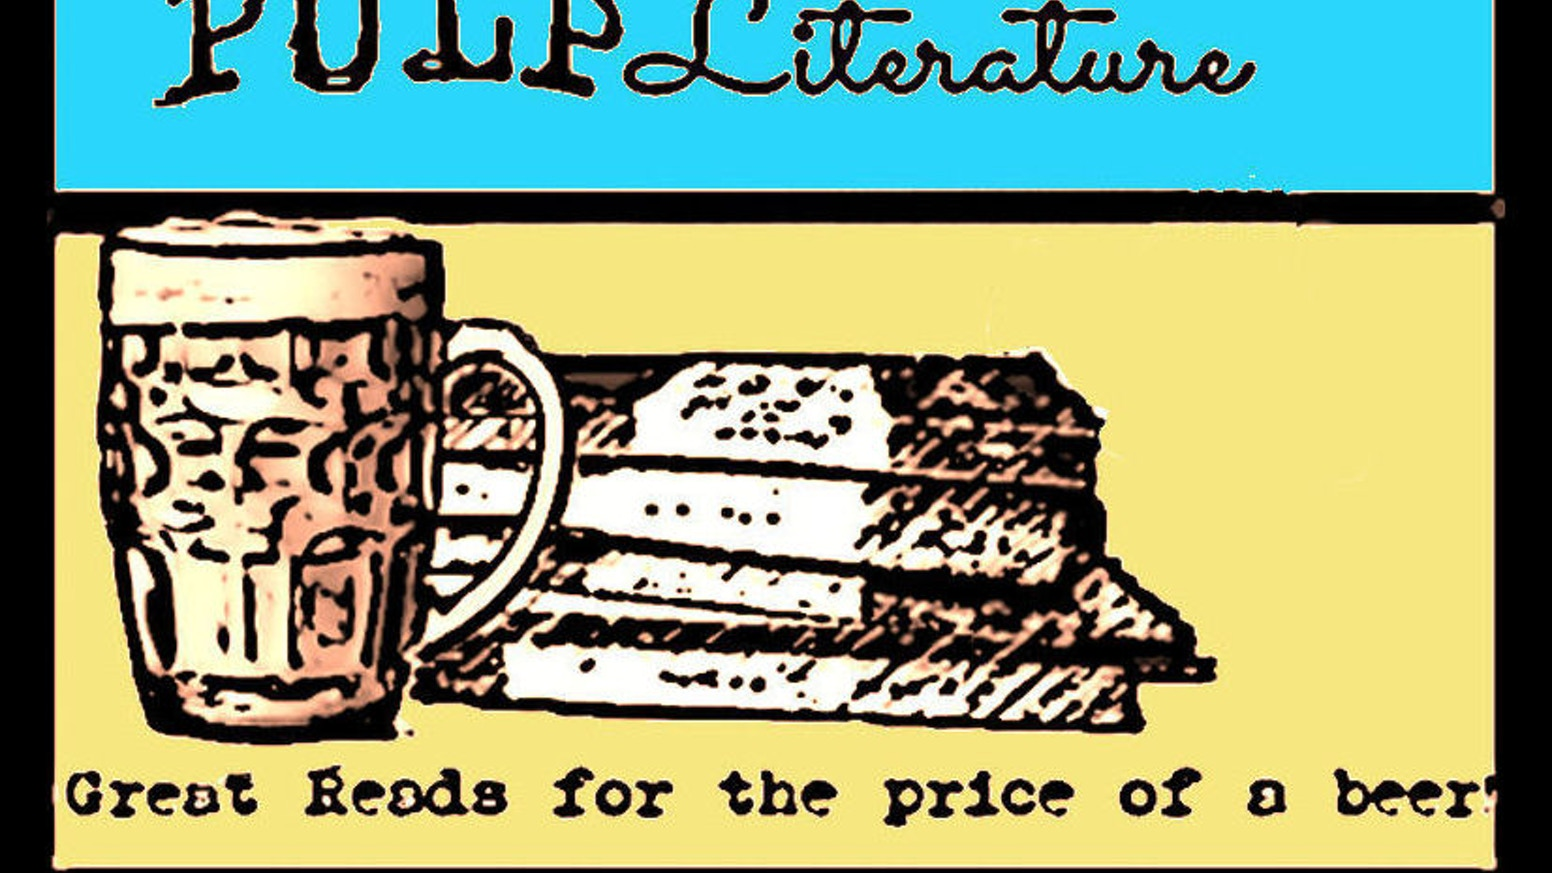 Genre-busting short stories, novellas, serials and graphic novels in a pulp anthology magazine.  Good books for the price of a beer!